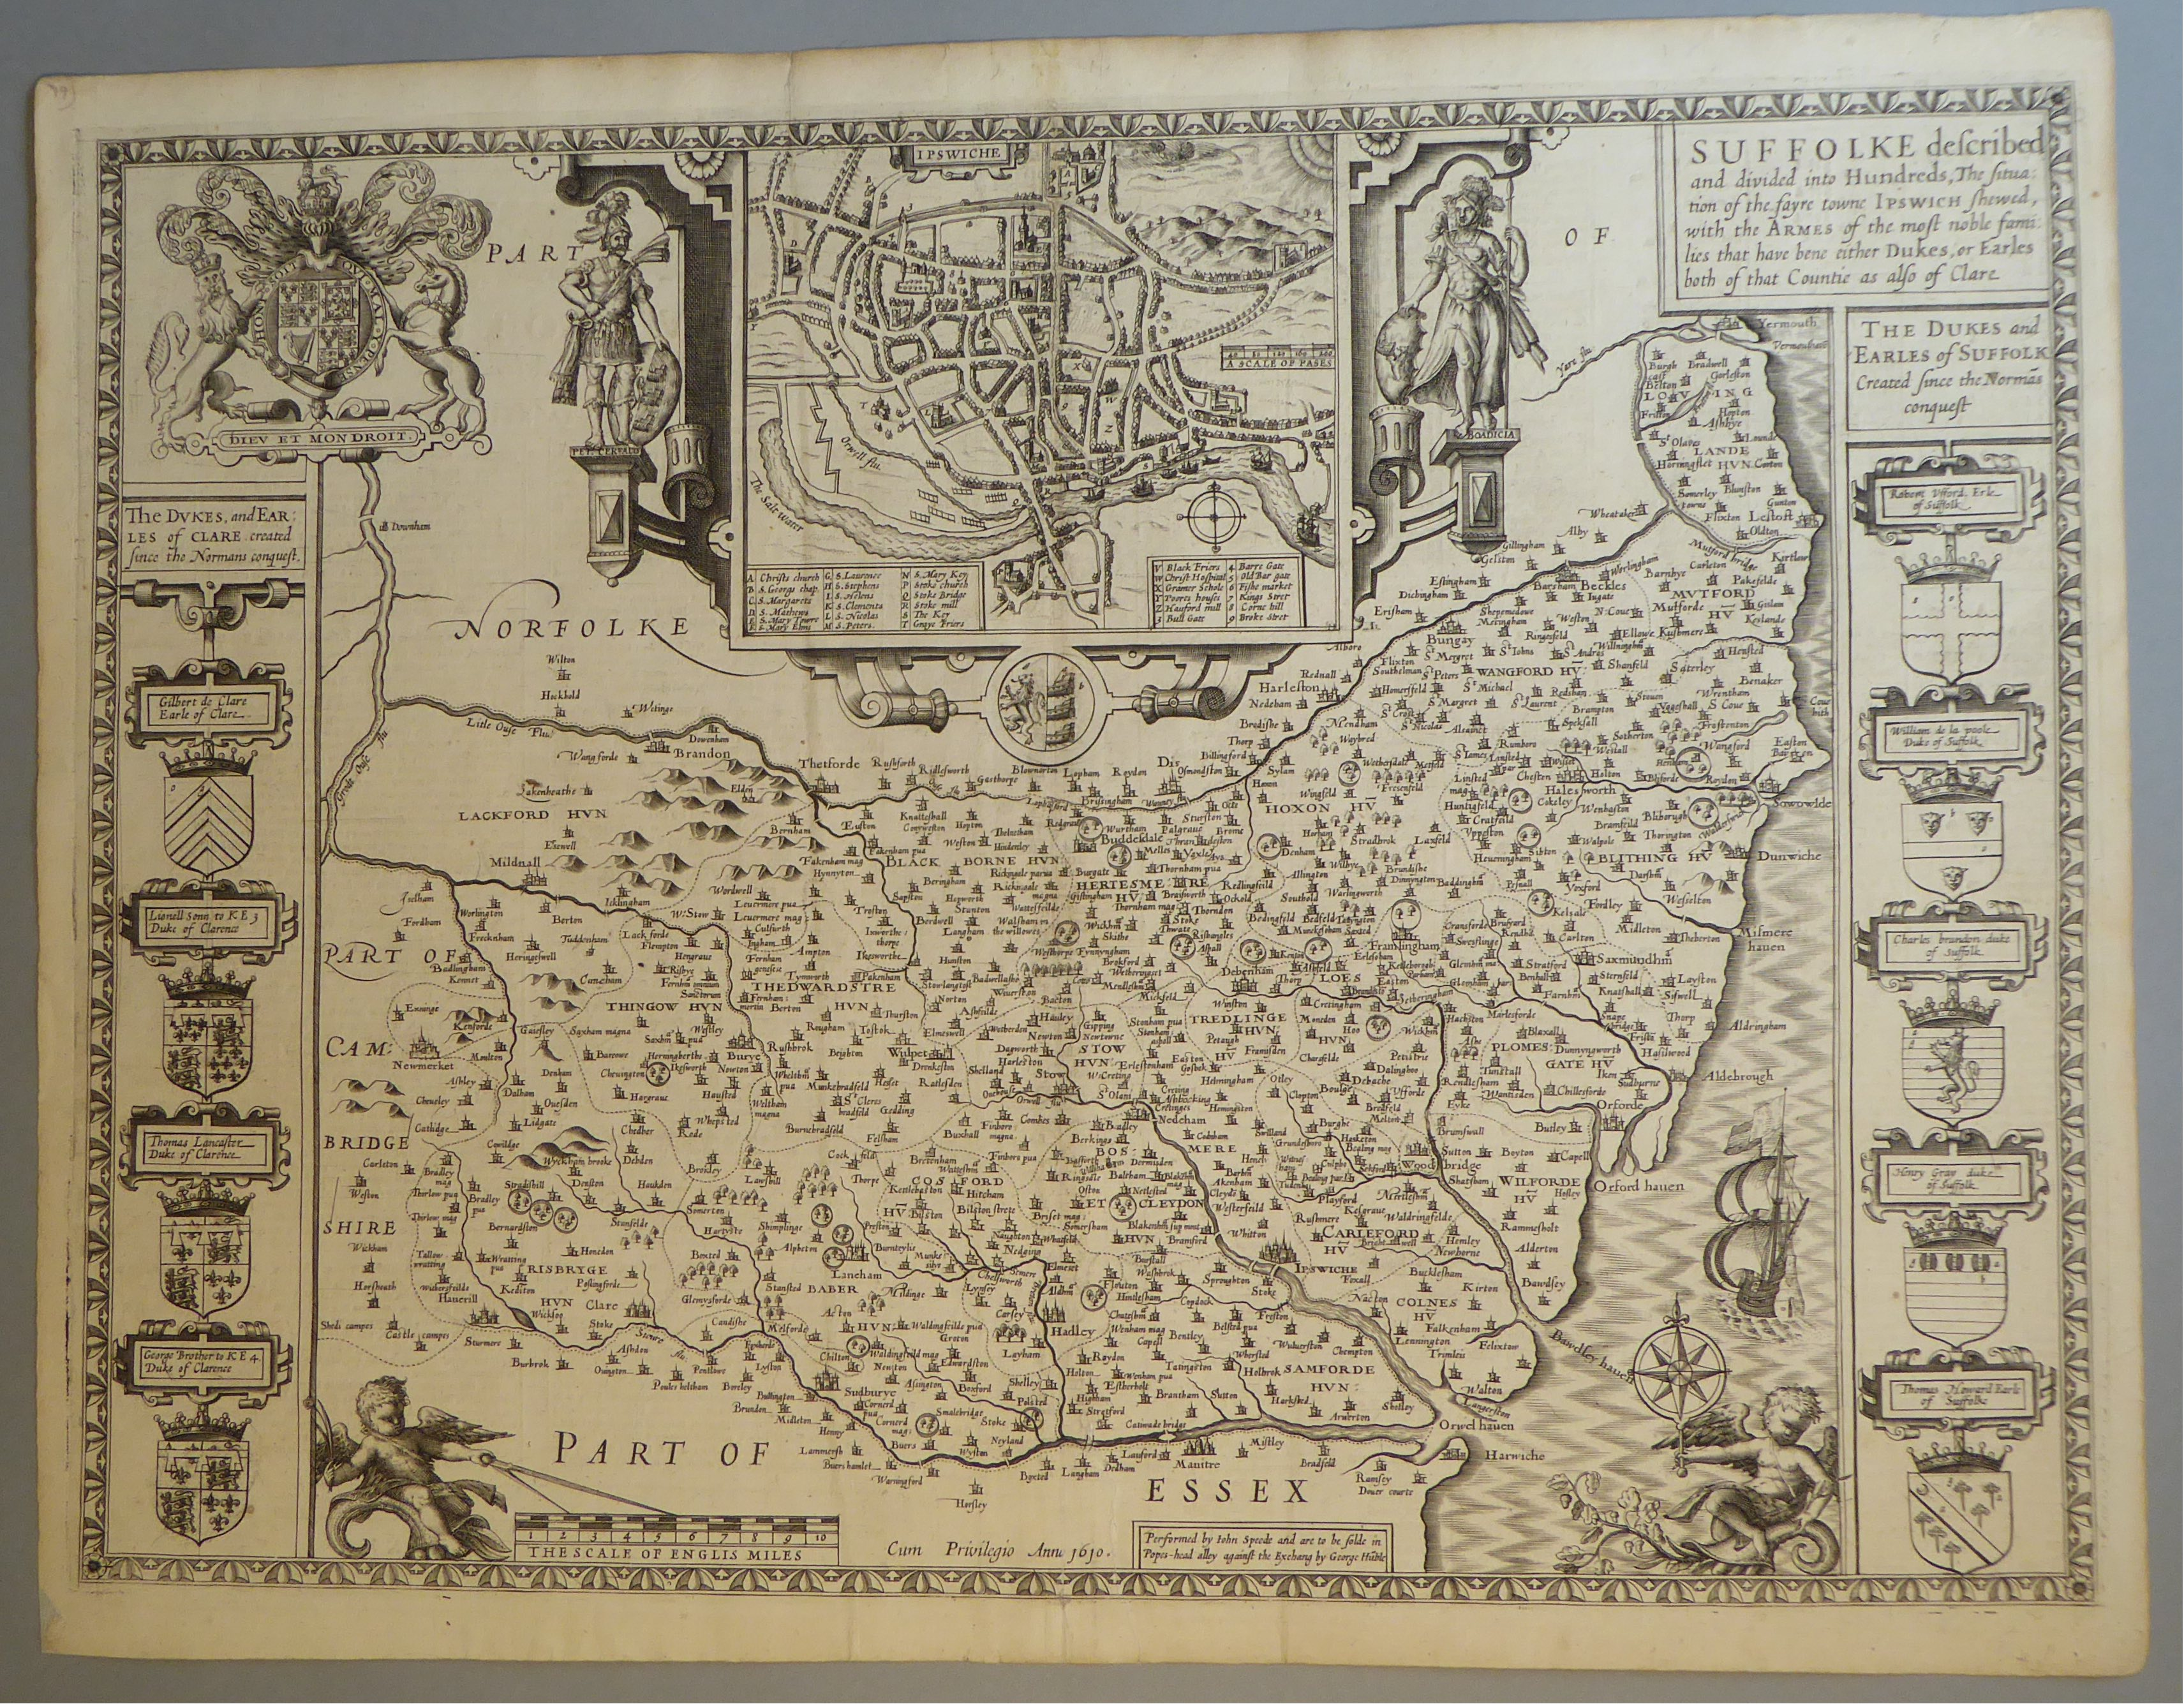 Lot 34 - A C17th Black & White copper engraved map of Suffolk by John Speed, c1612